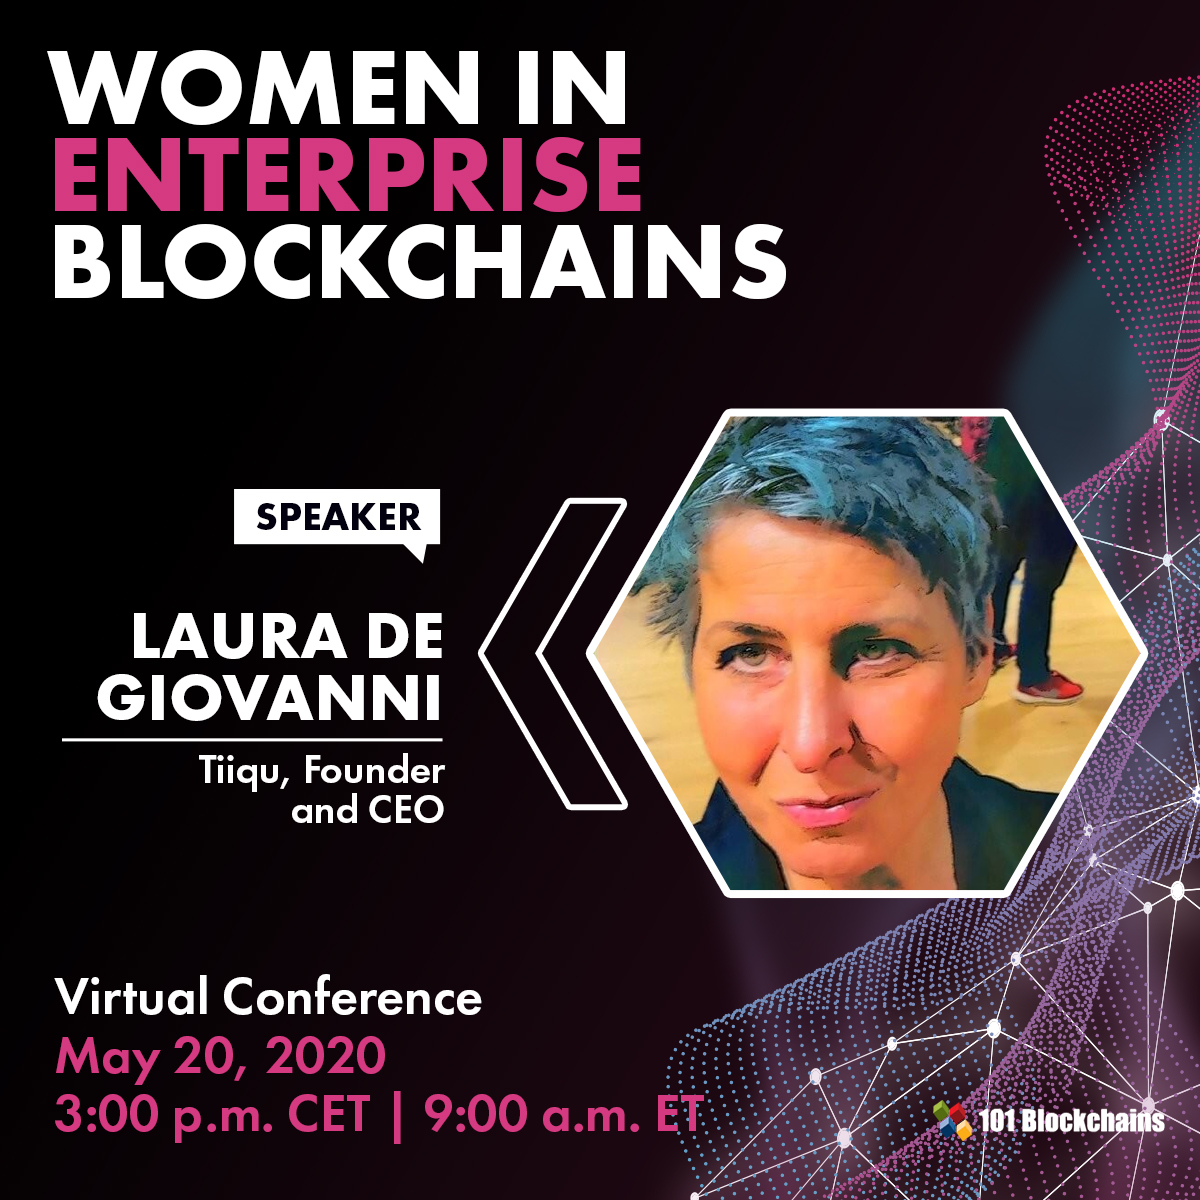 Women in Enterprise blockchains Conference - 26, May